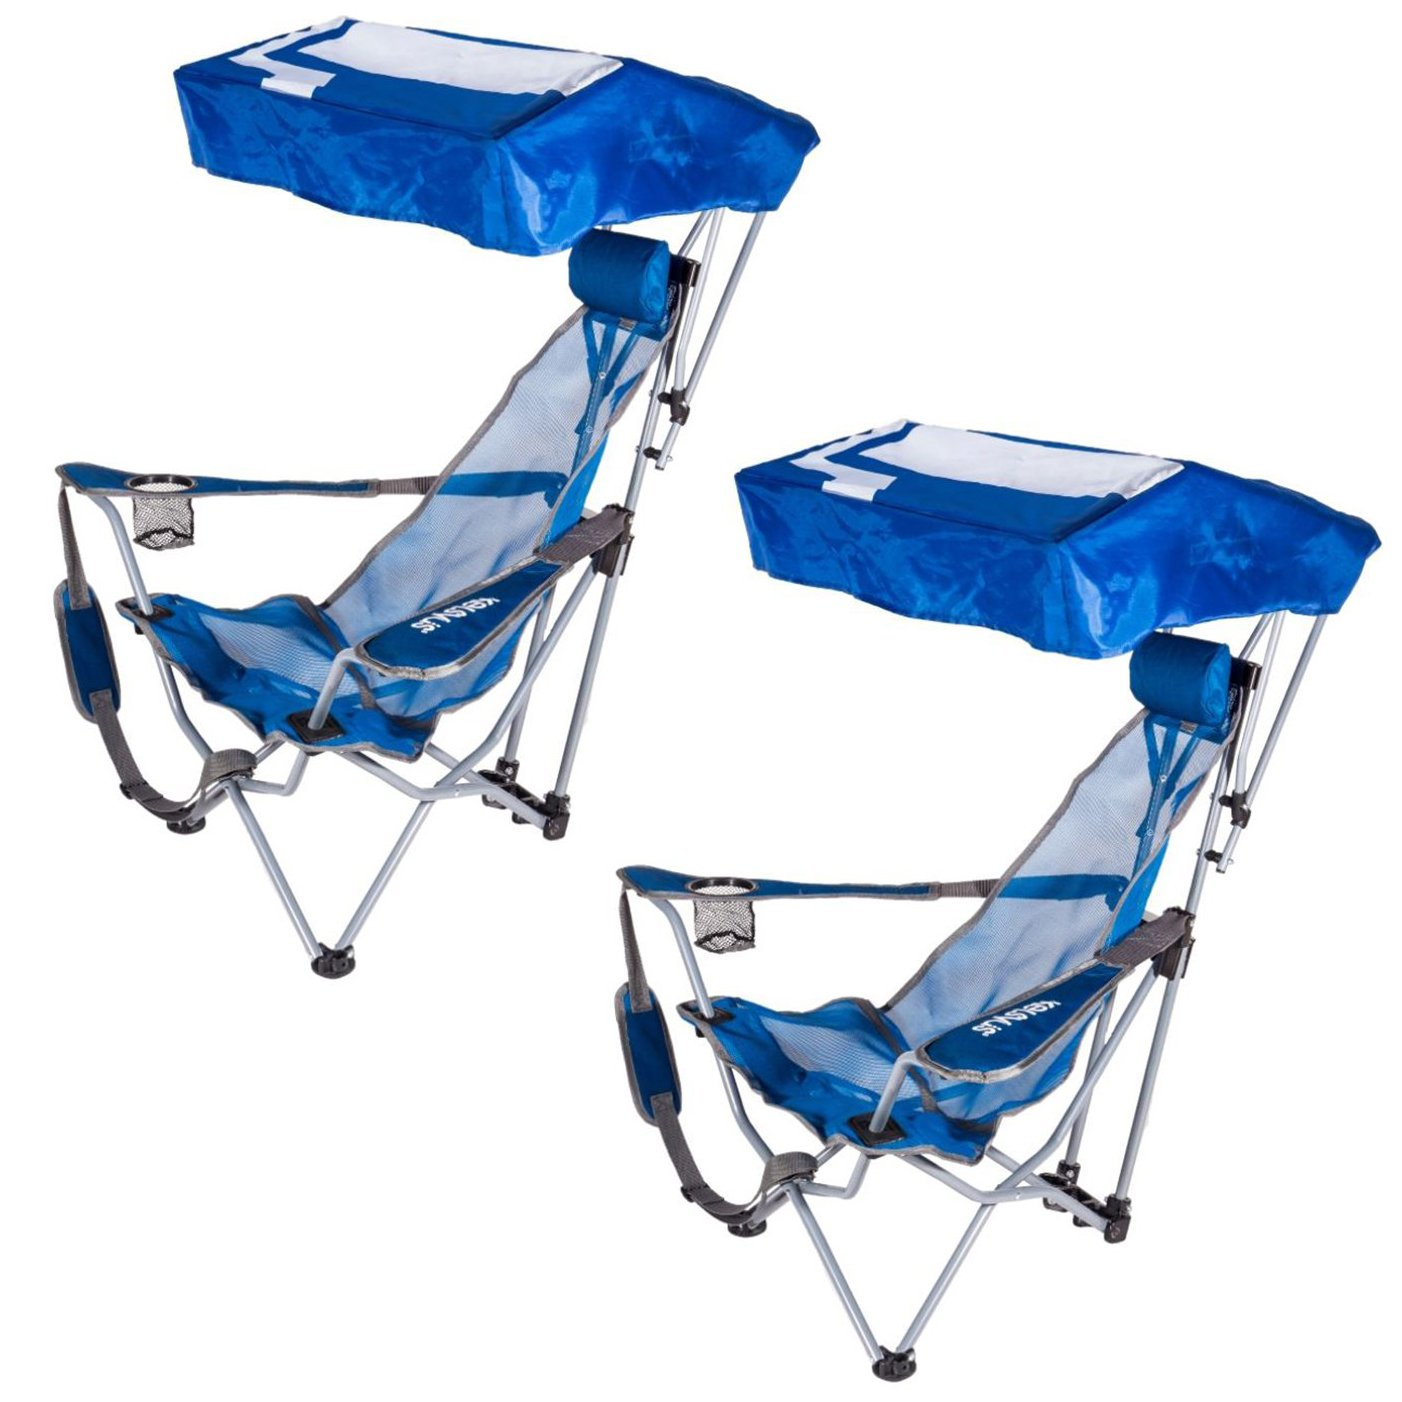 portable lawn chairs patio menards kelsyus backpack beach camping folding chair with canopy 2 pack walmart com